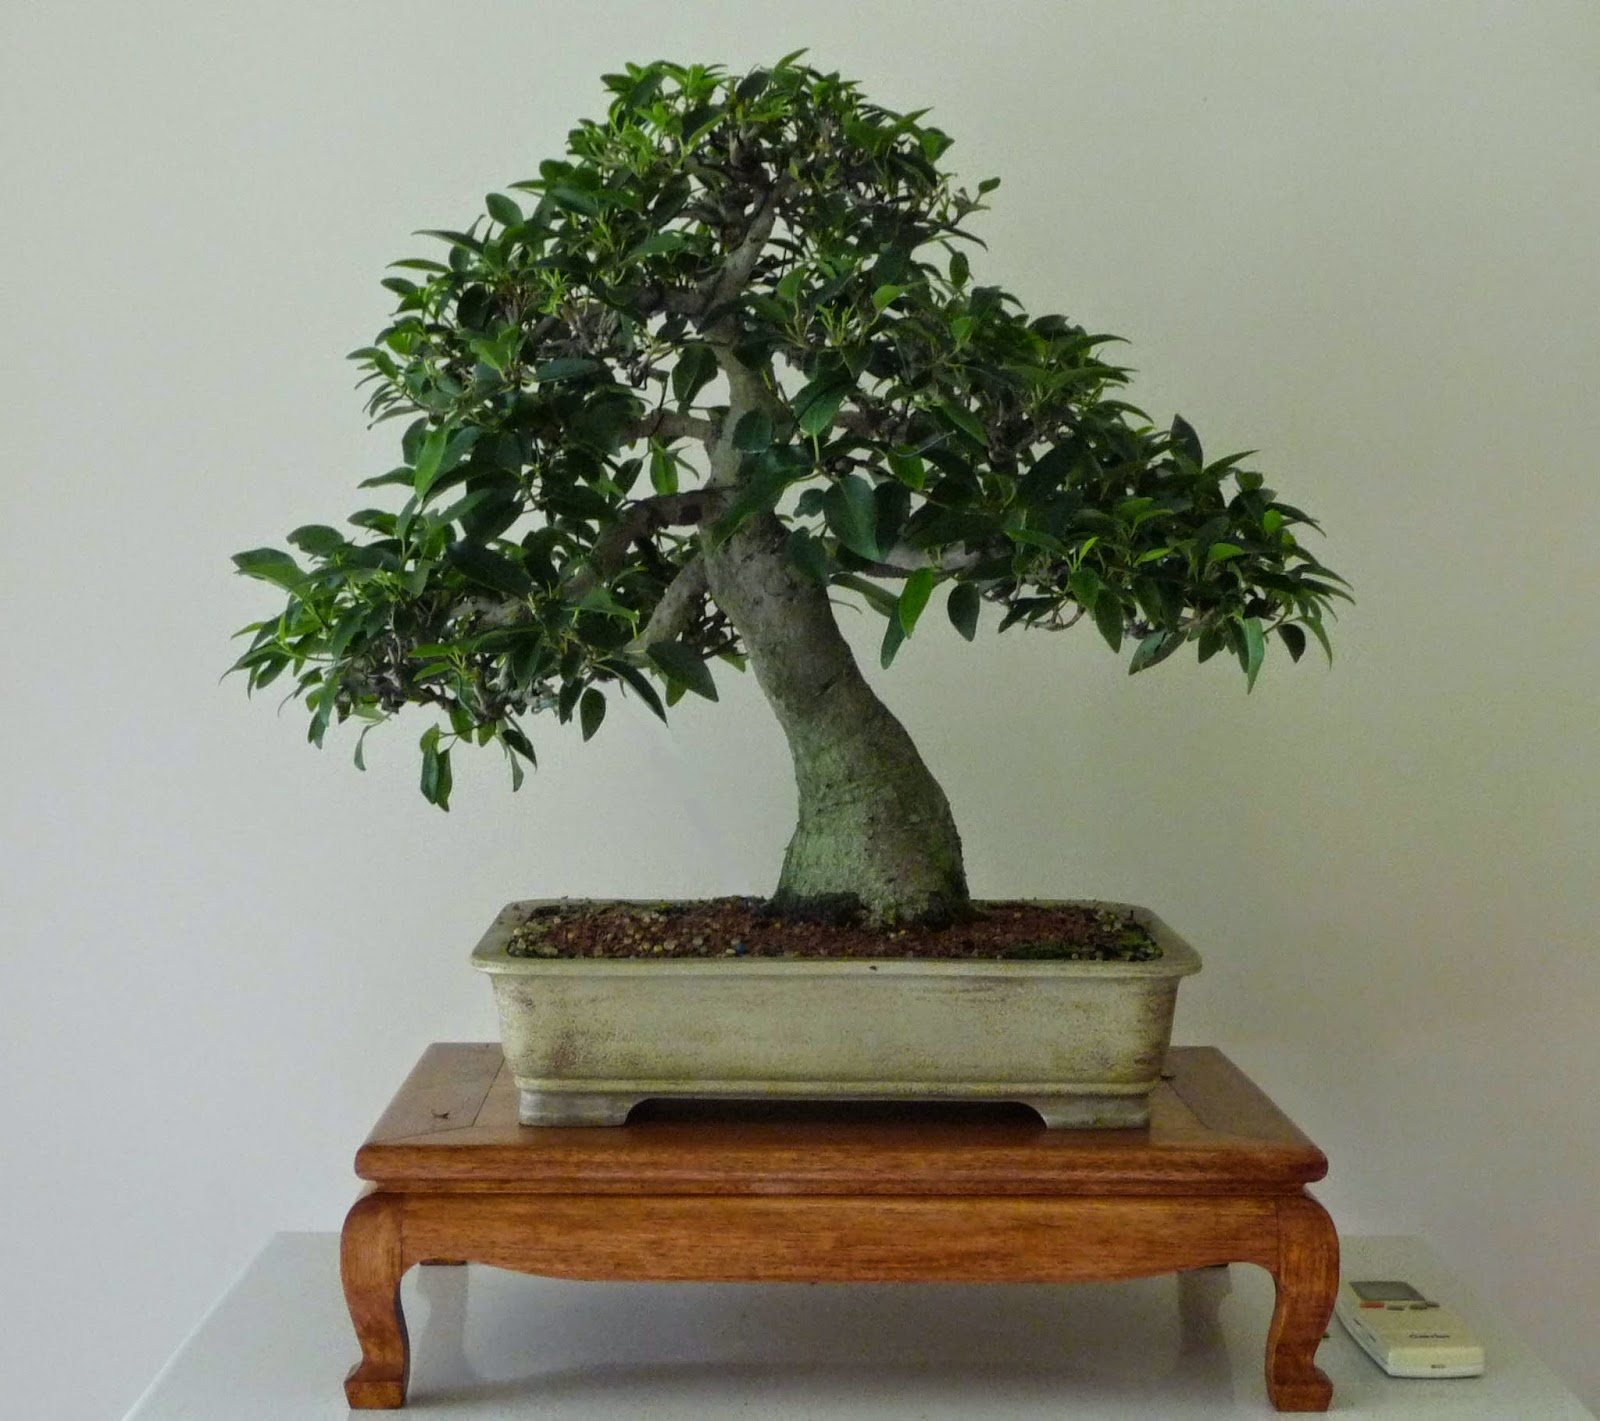 Bonsai Amp Pottery March 2015